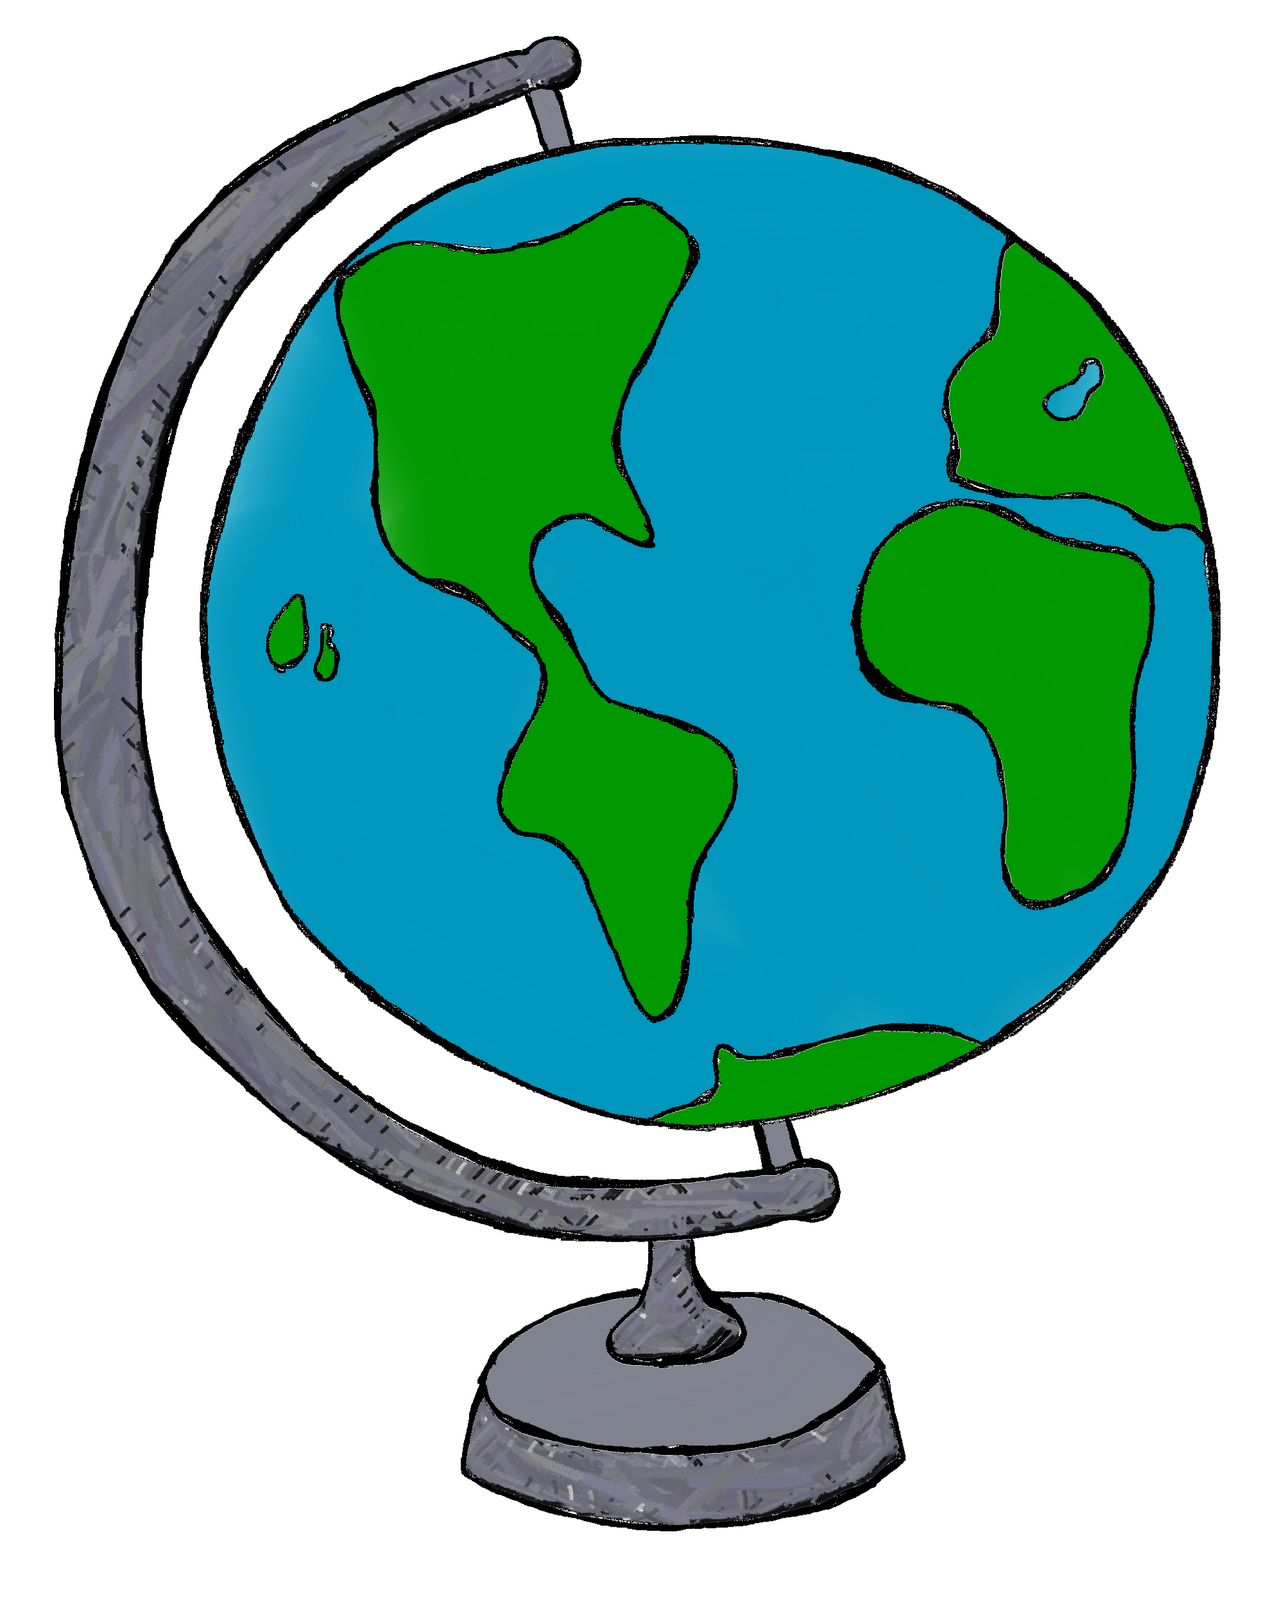 travel clipart globe